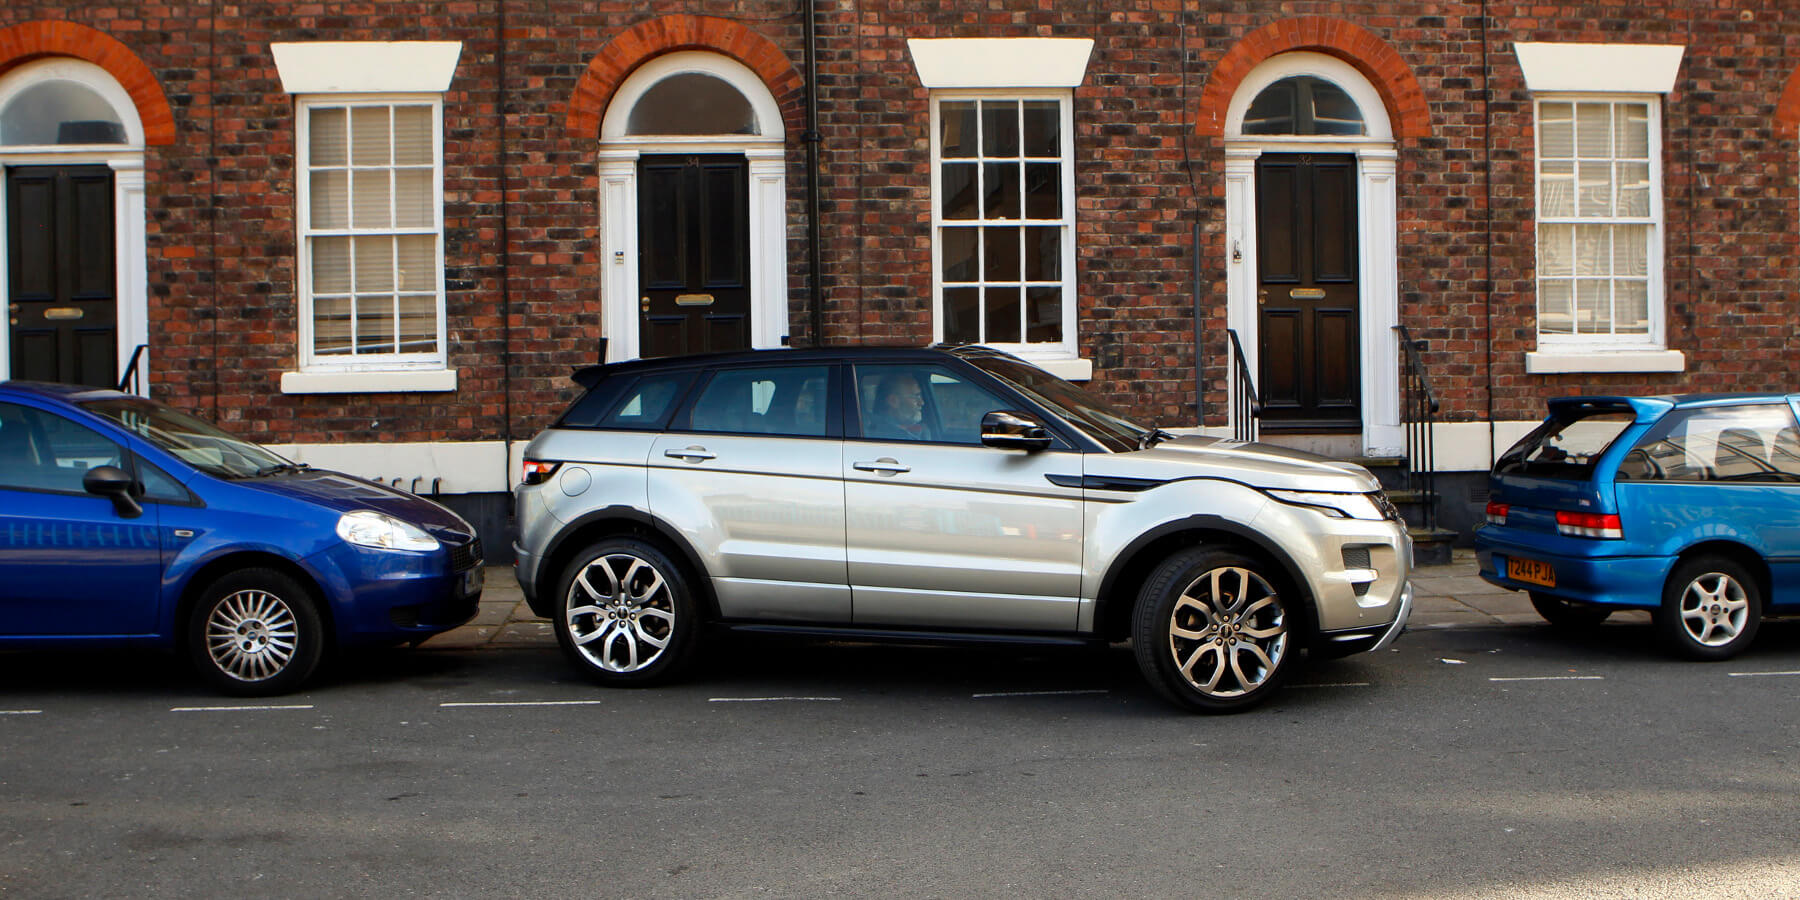 Land Rover Range Rover Parking